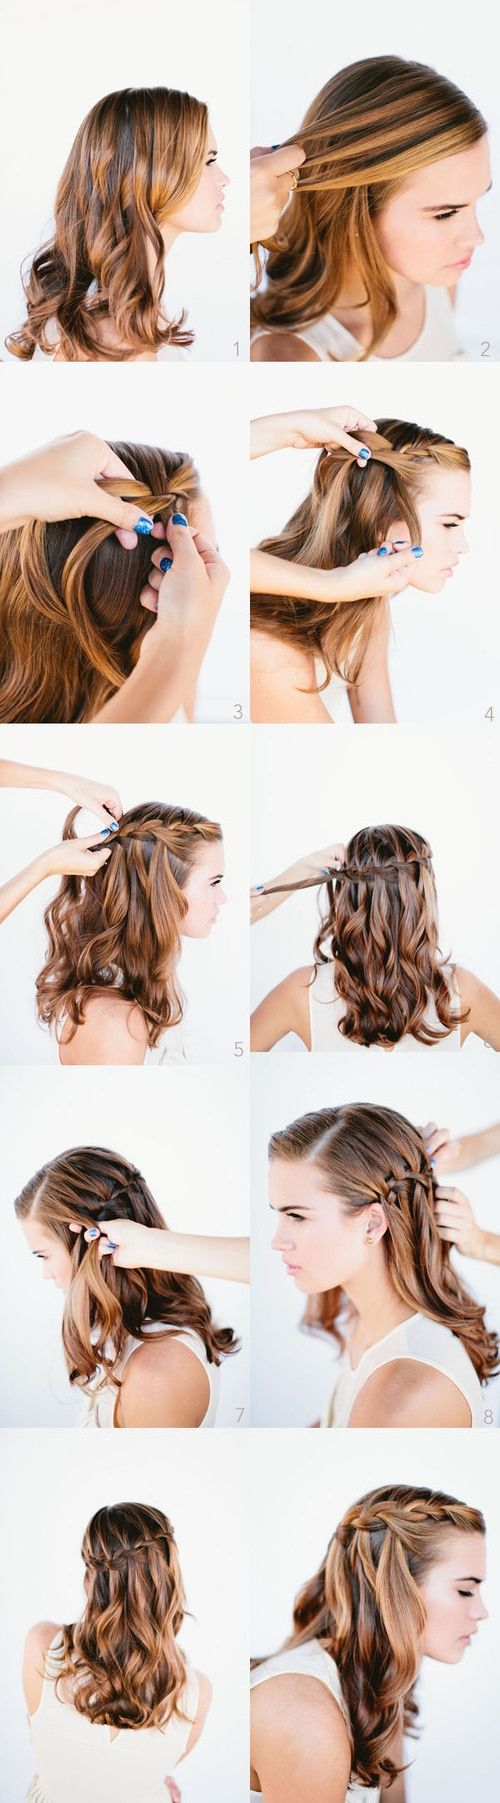 107 best curly girly images on pinterest